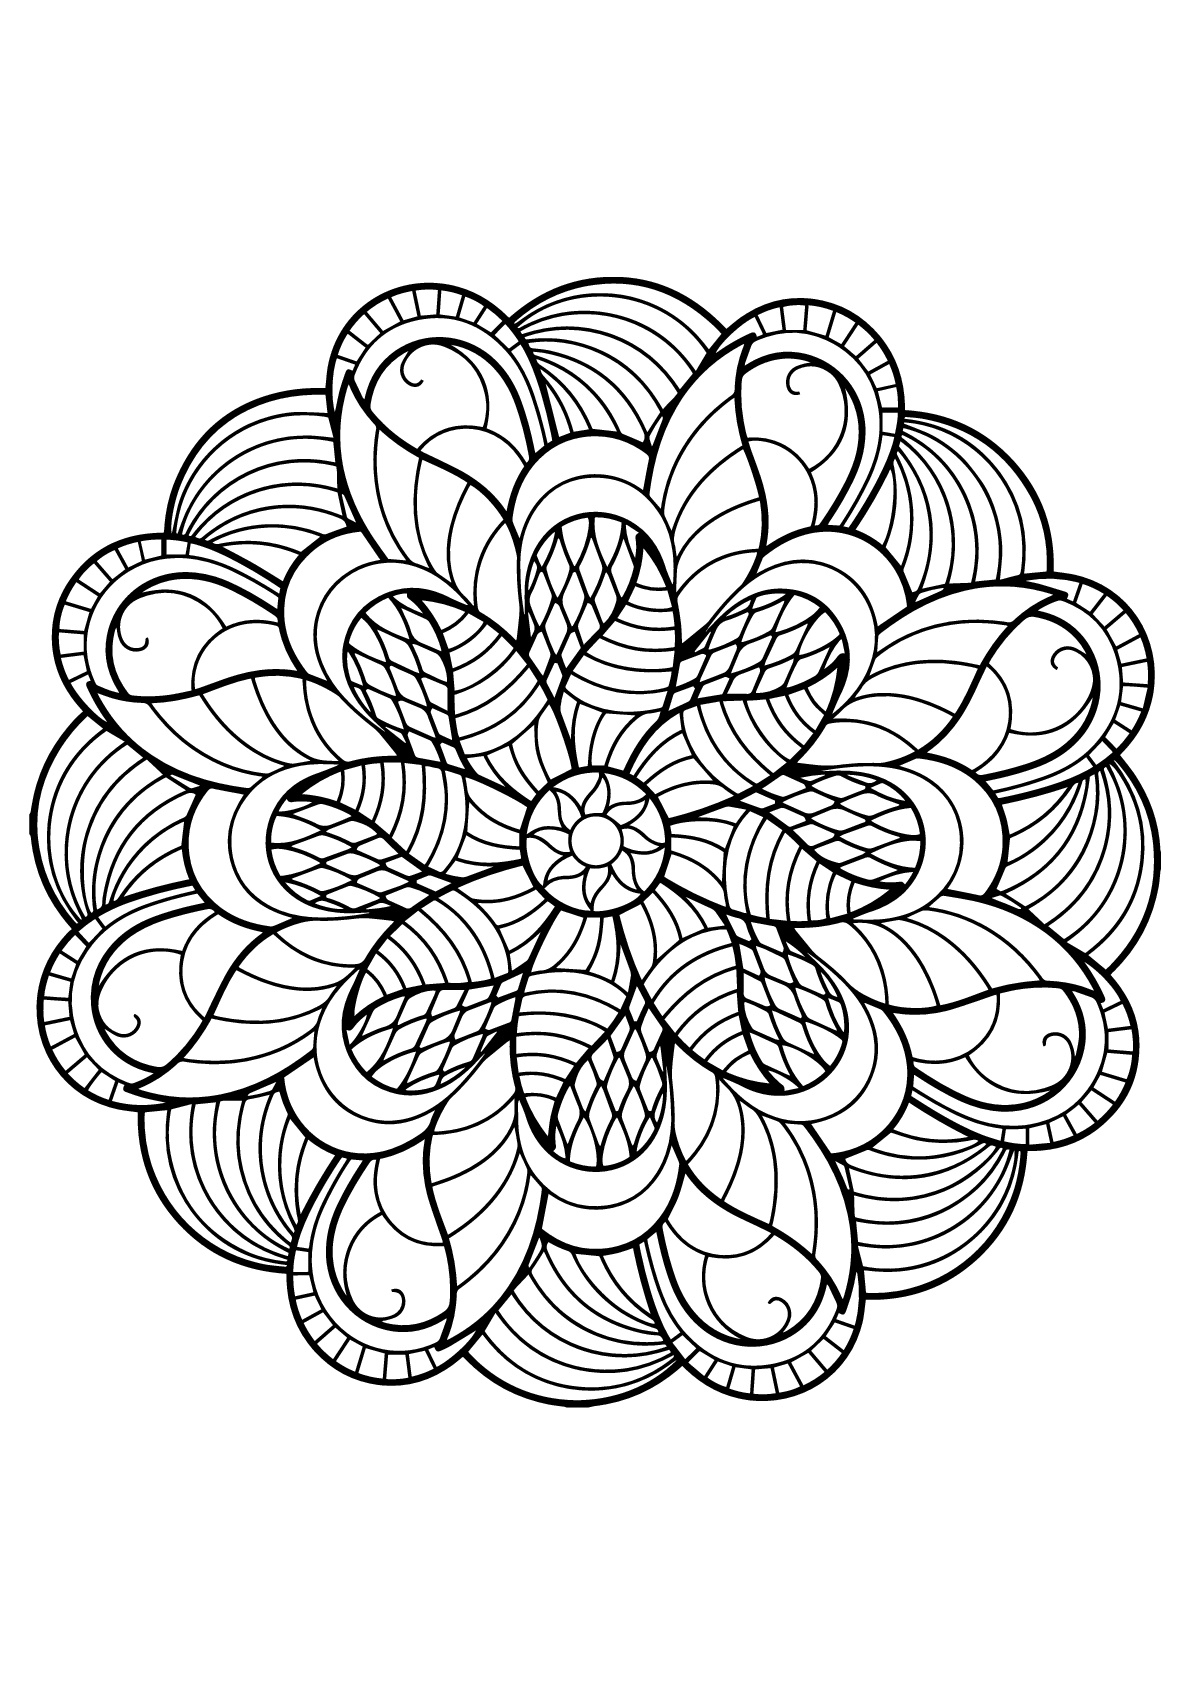 Mandala from free coloring books for adults 6 - Mandalas ...